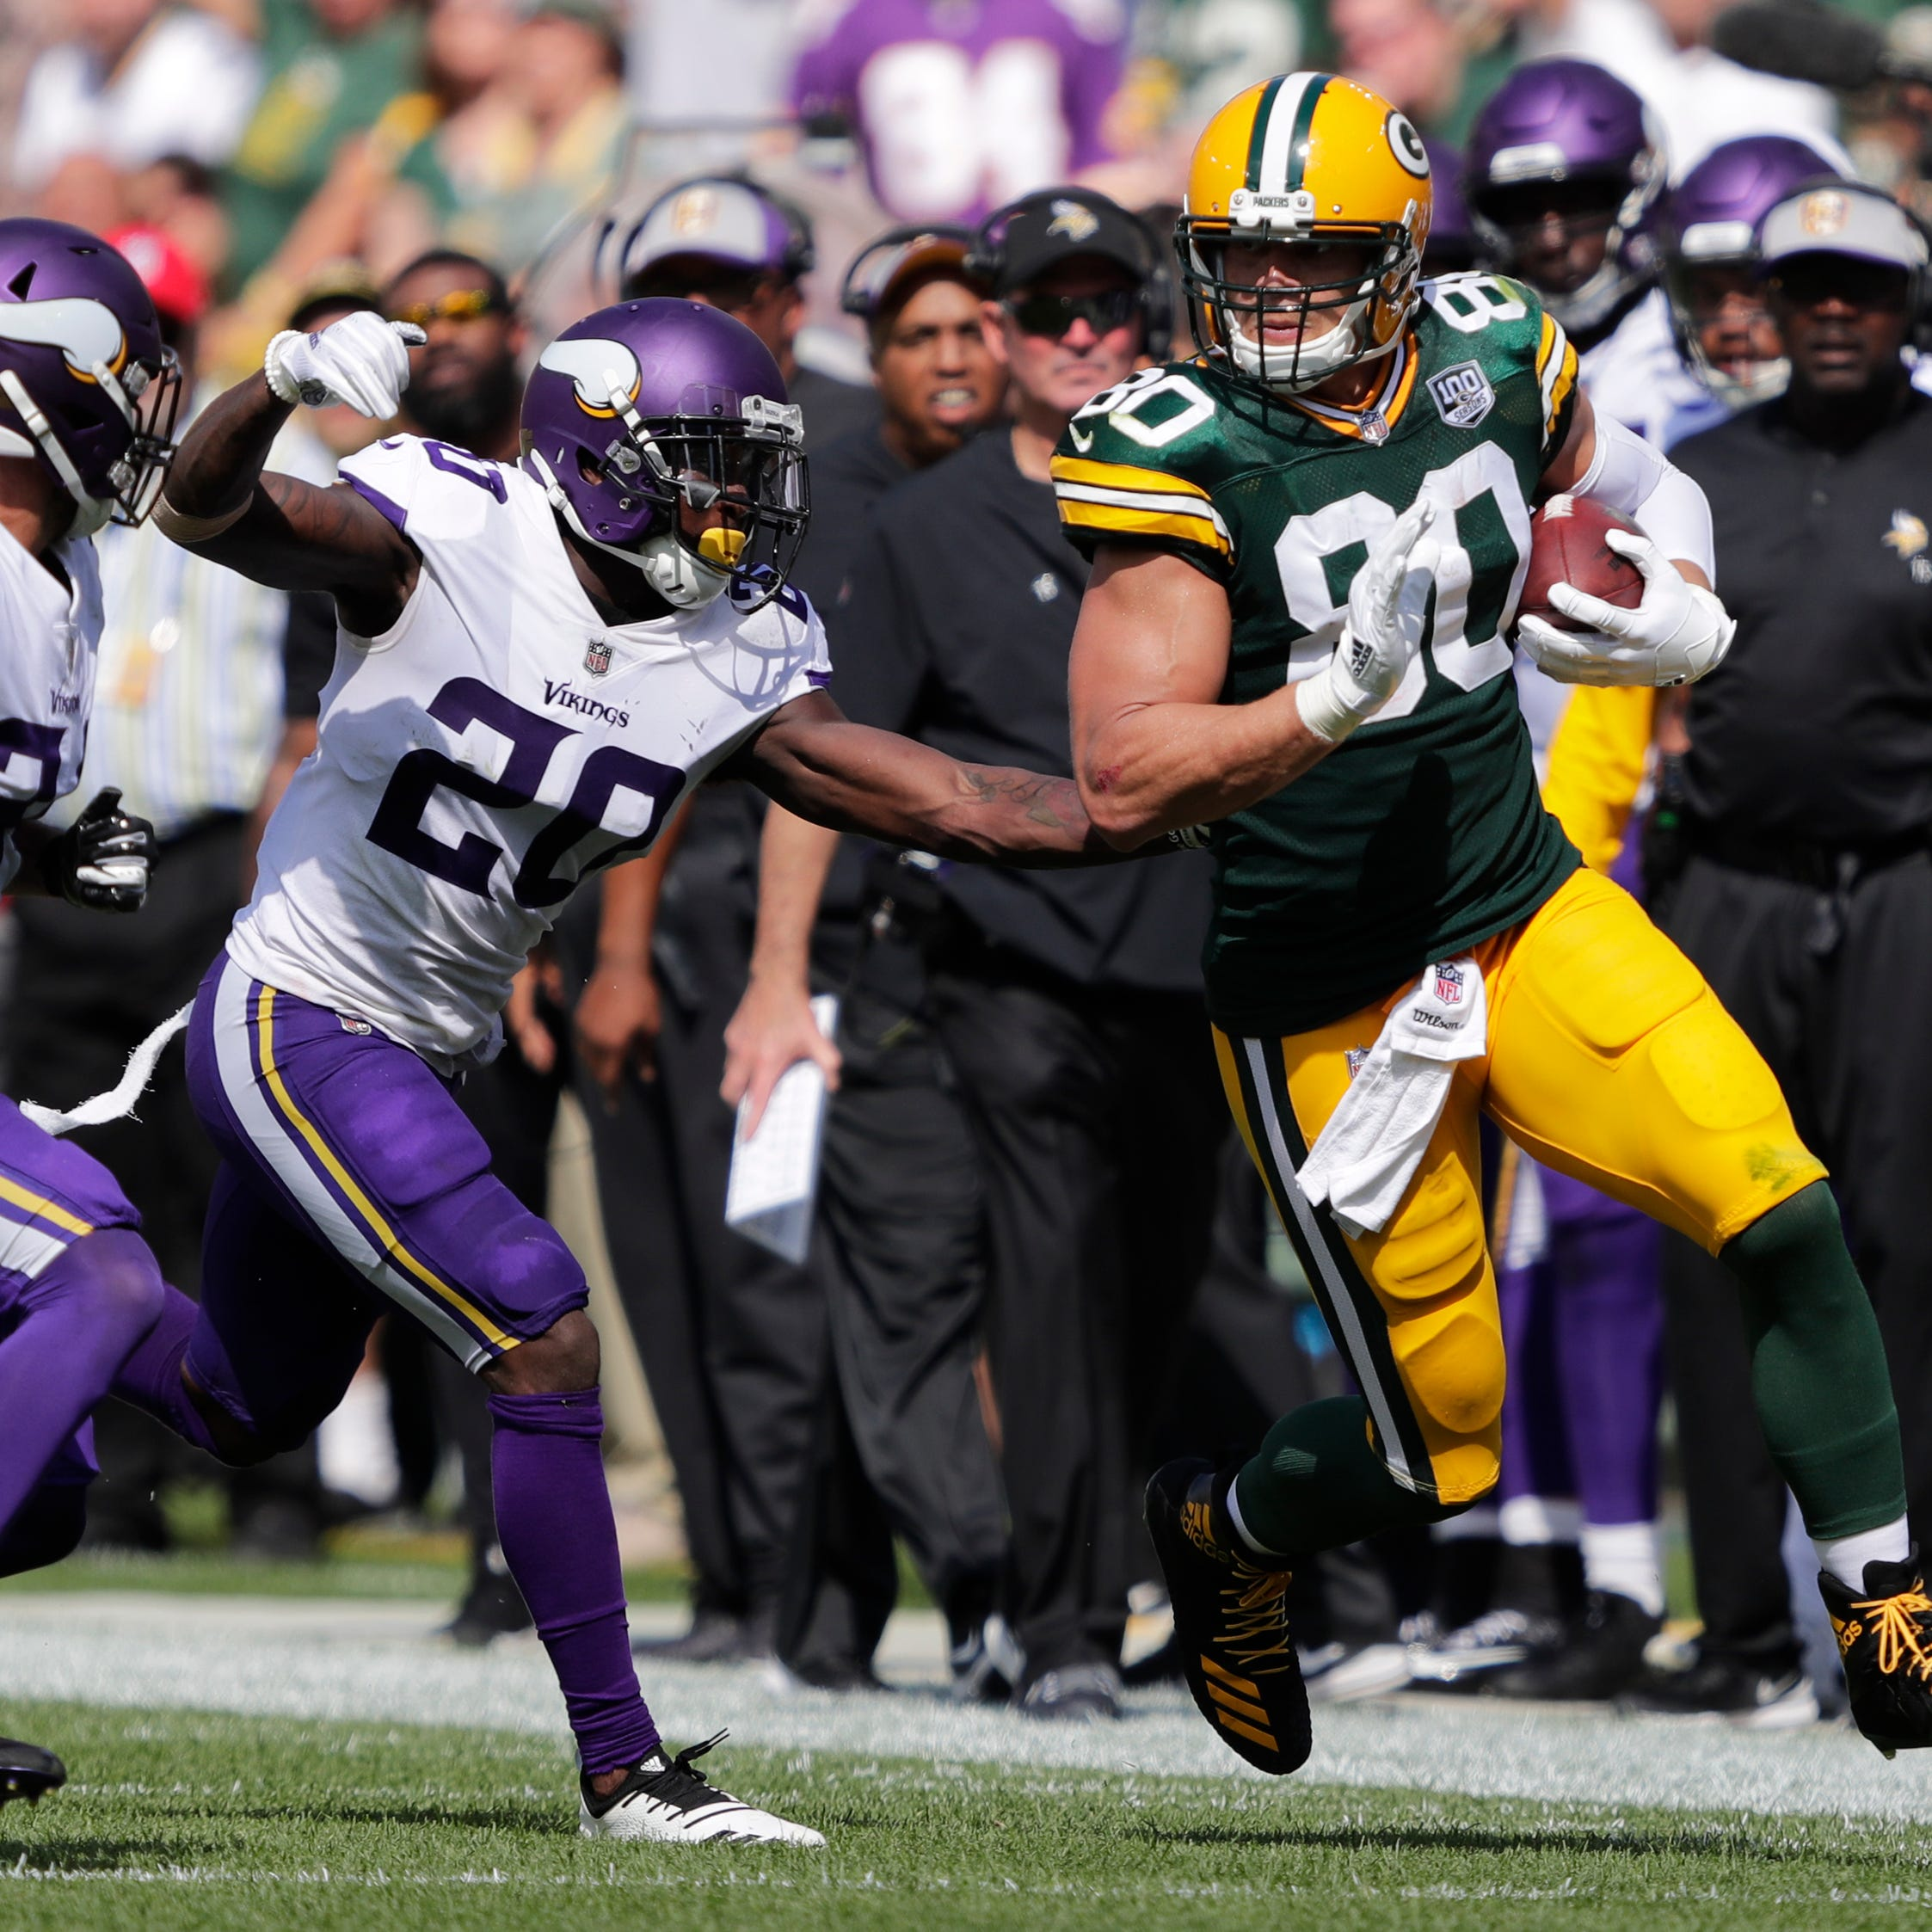 Tight end Jimmy Graham happy to play any role needed in Packers' offense